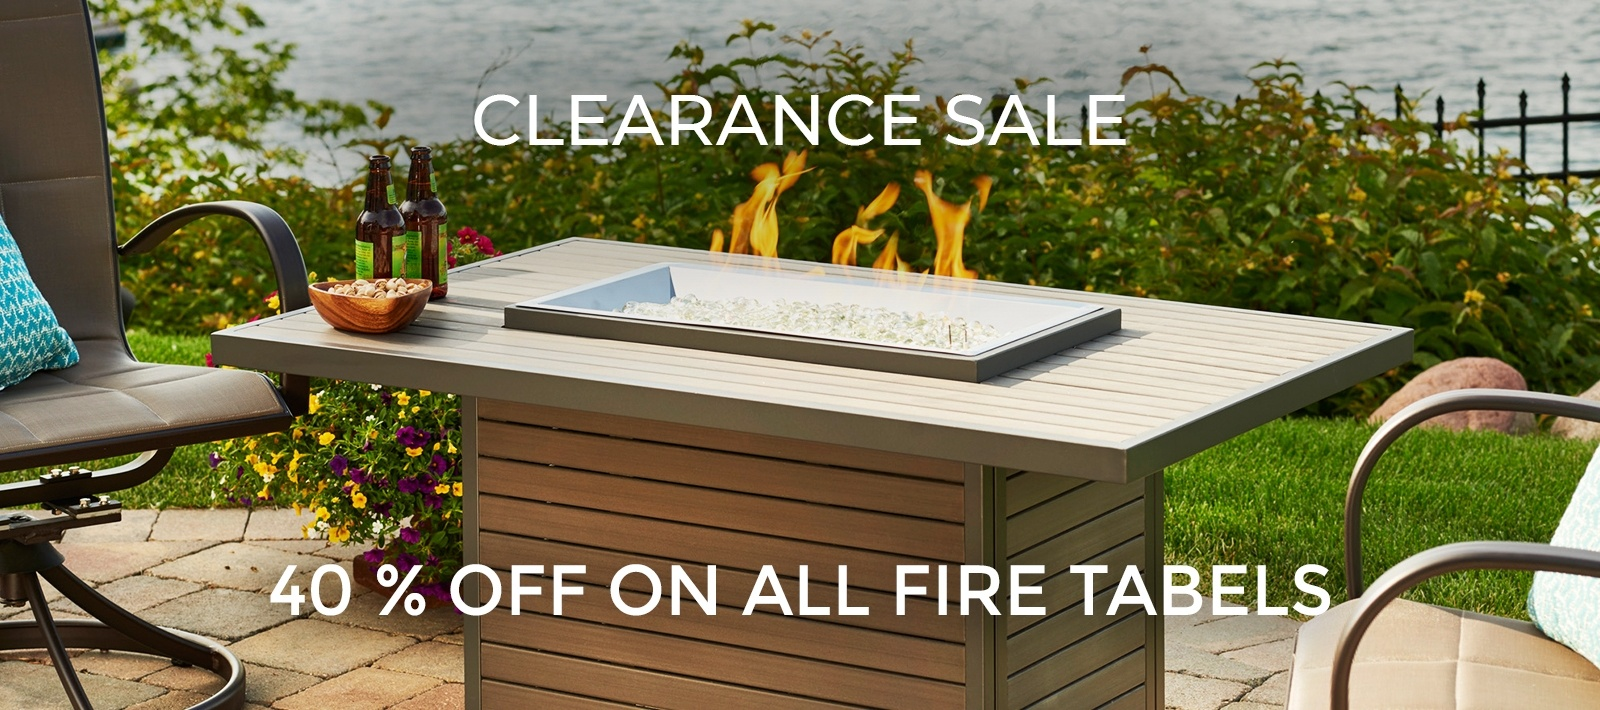 Clearance Sale - 40 Percent Off on all Fire Tables - Beachcomber Lloydminster